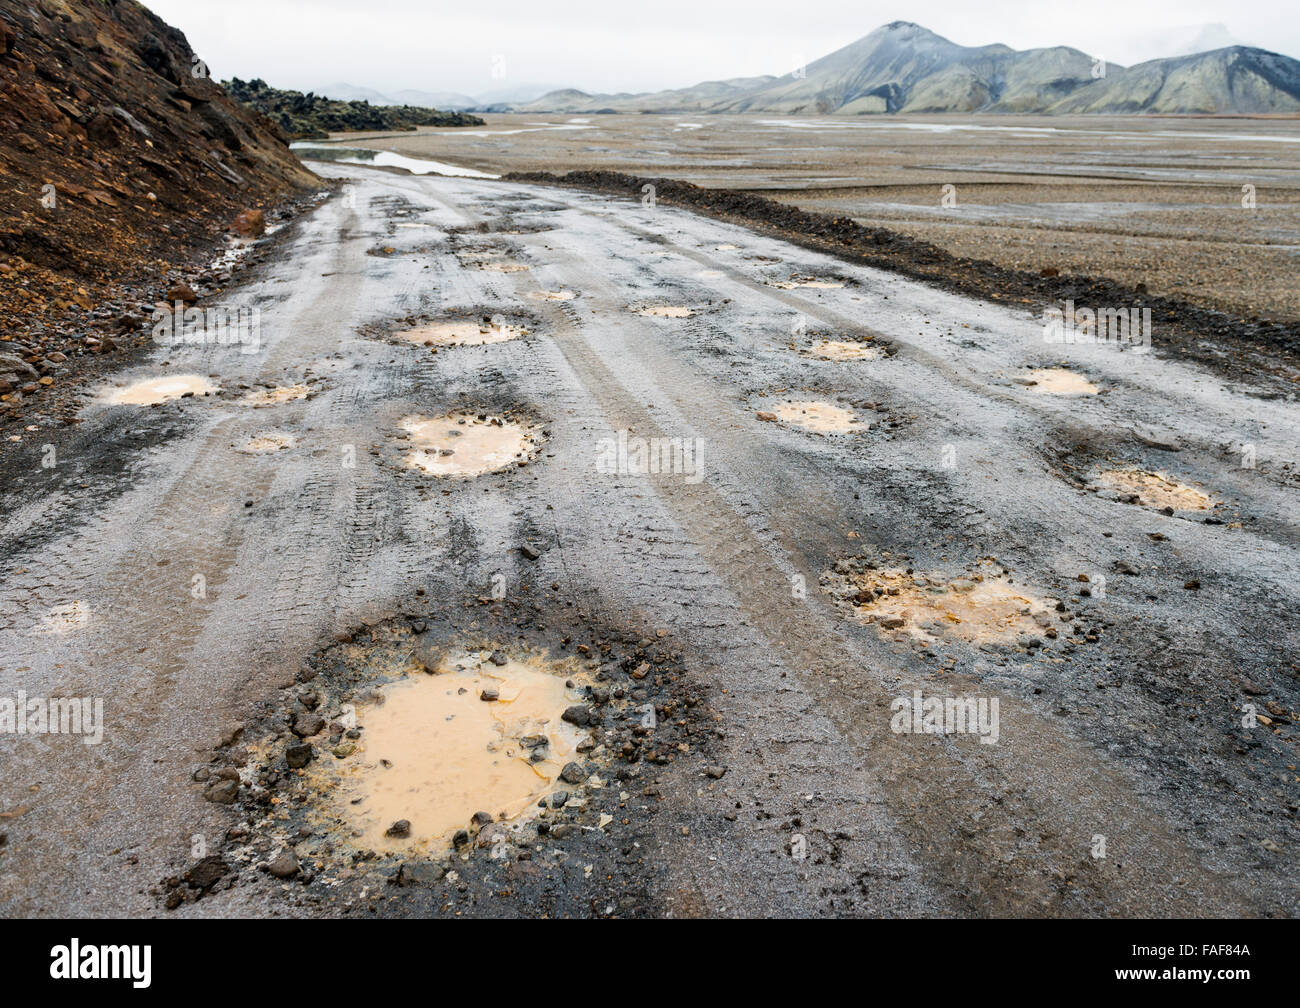 Poor road with potholes, Iceland - Stock Image